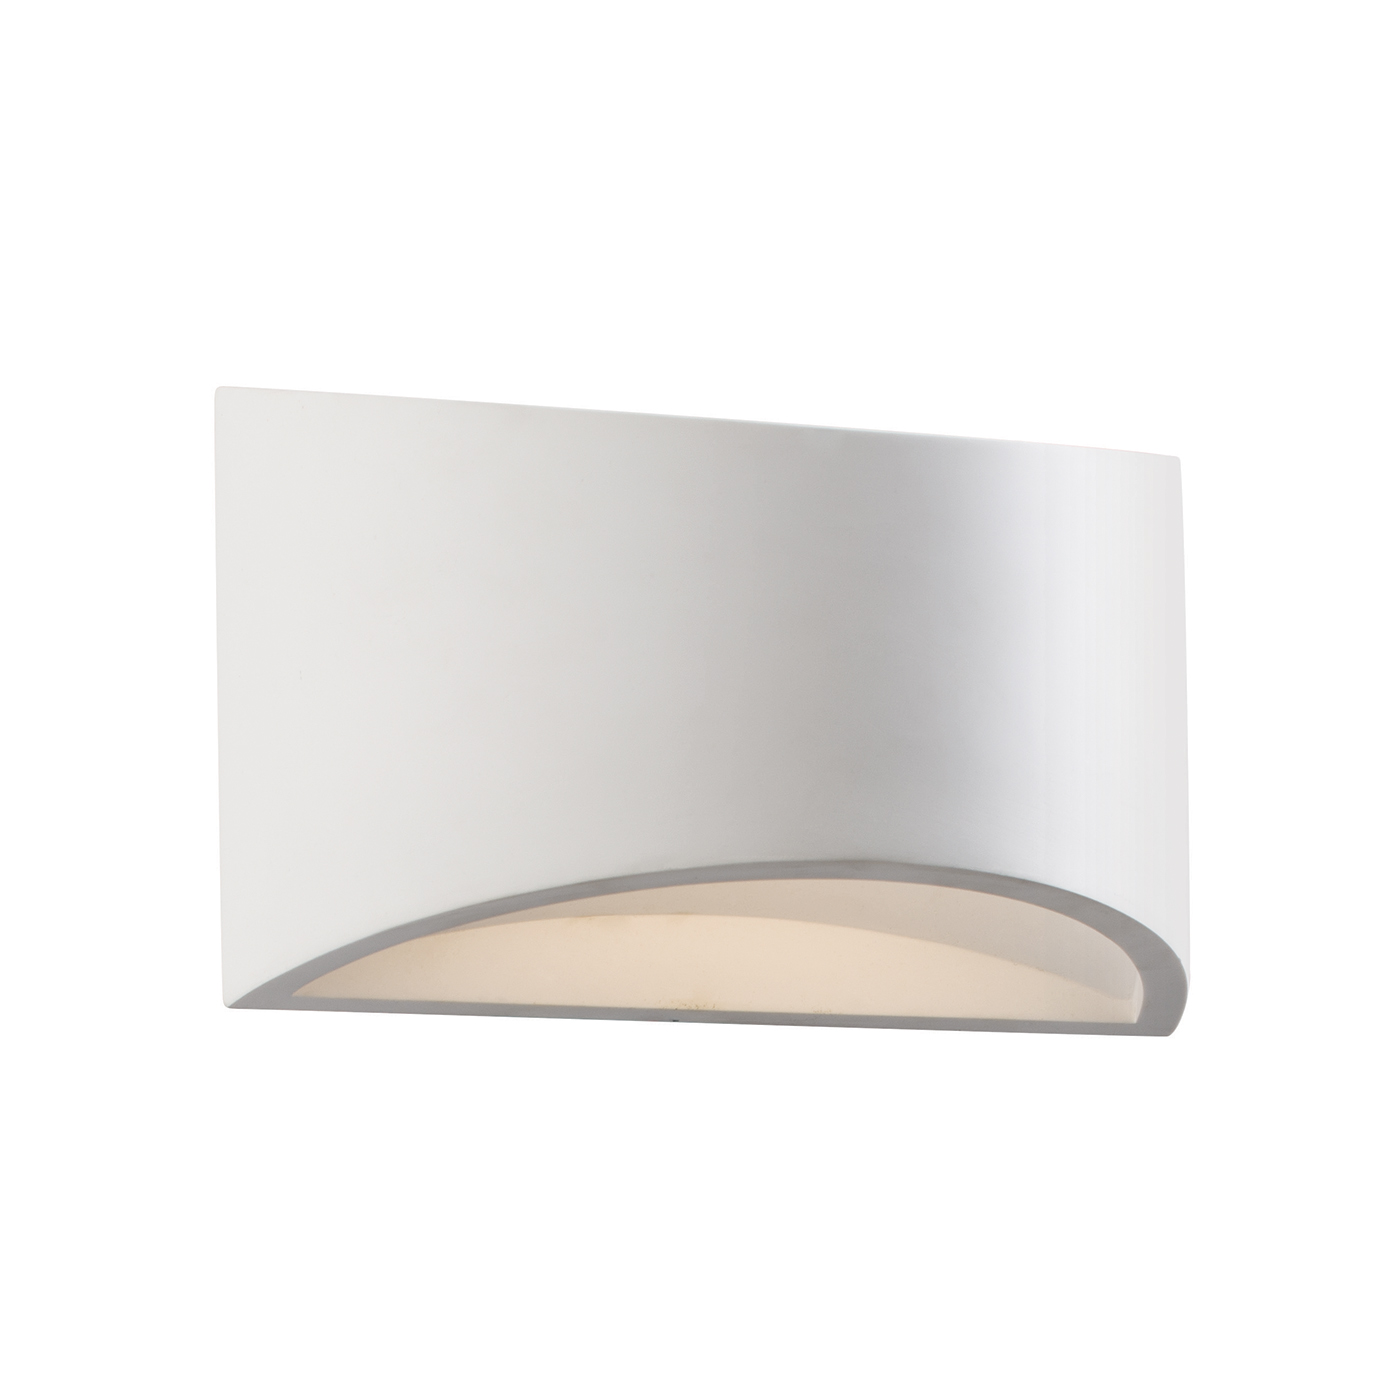 Endon Toko 1lt 200mm wall light 3W White plaster Thumbnail 1